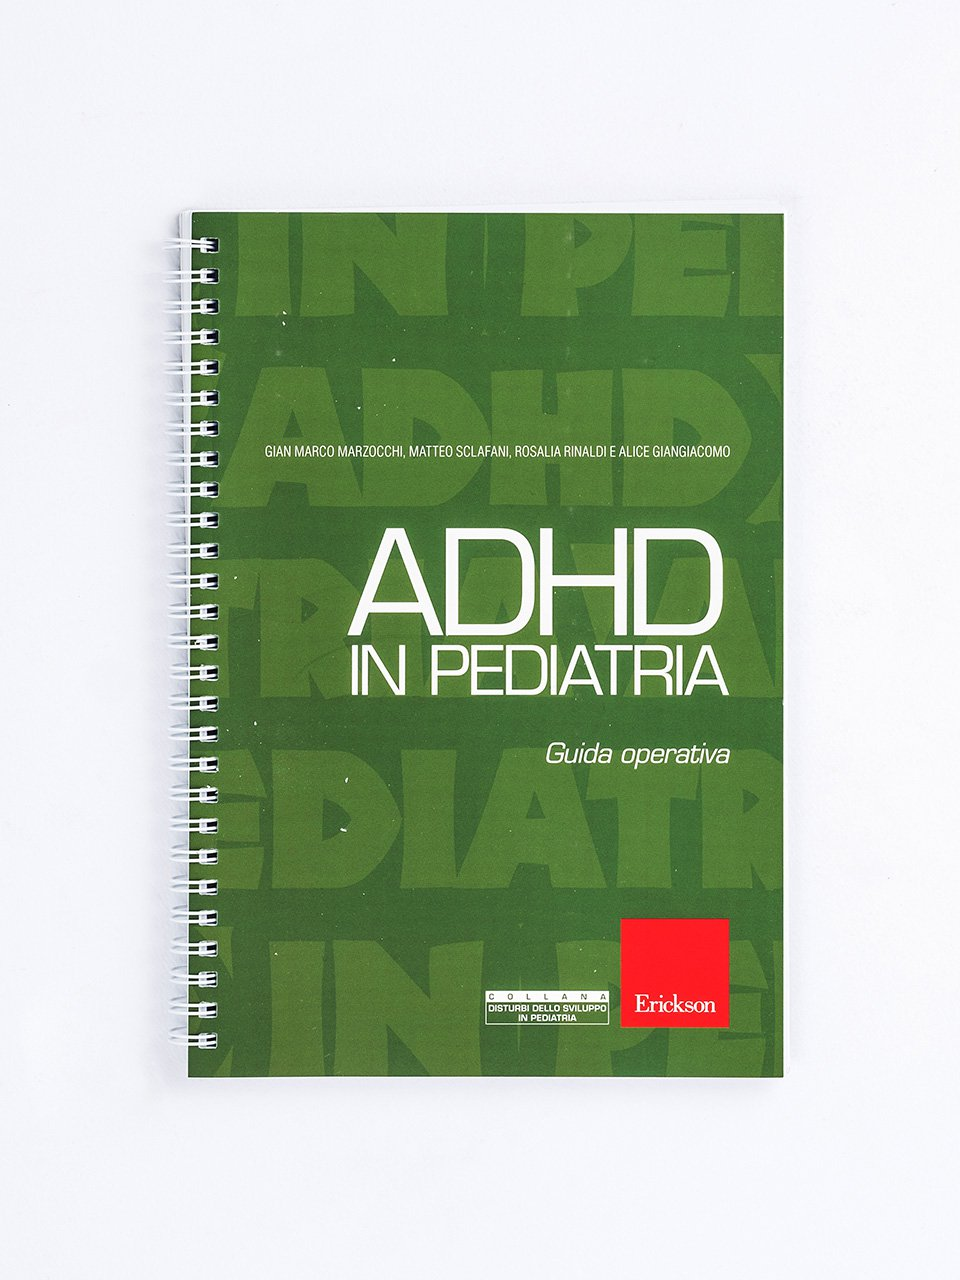 ADHD in pediatria - H - Libri - Erickson